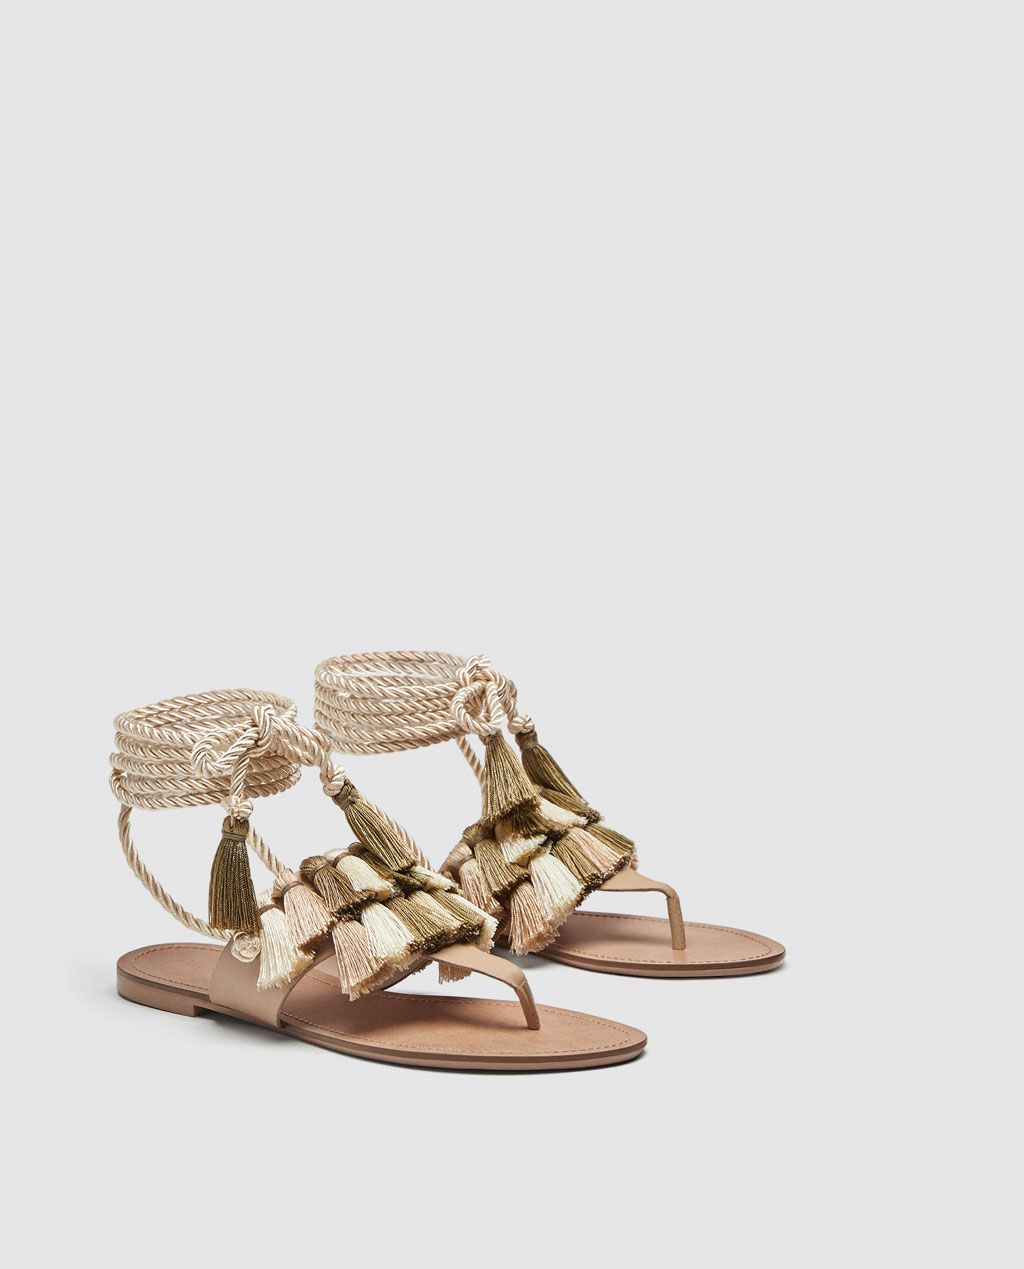 3271621c36b Image 2 of FLAT LEATHER SANDALS WITH TASSELS from Zara